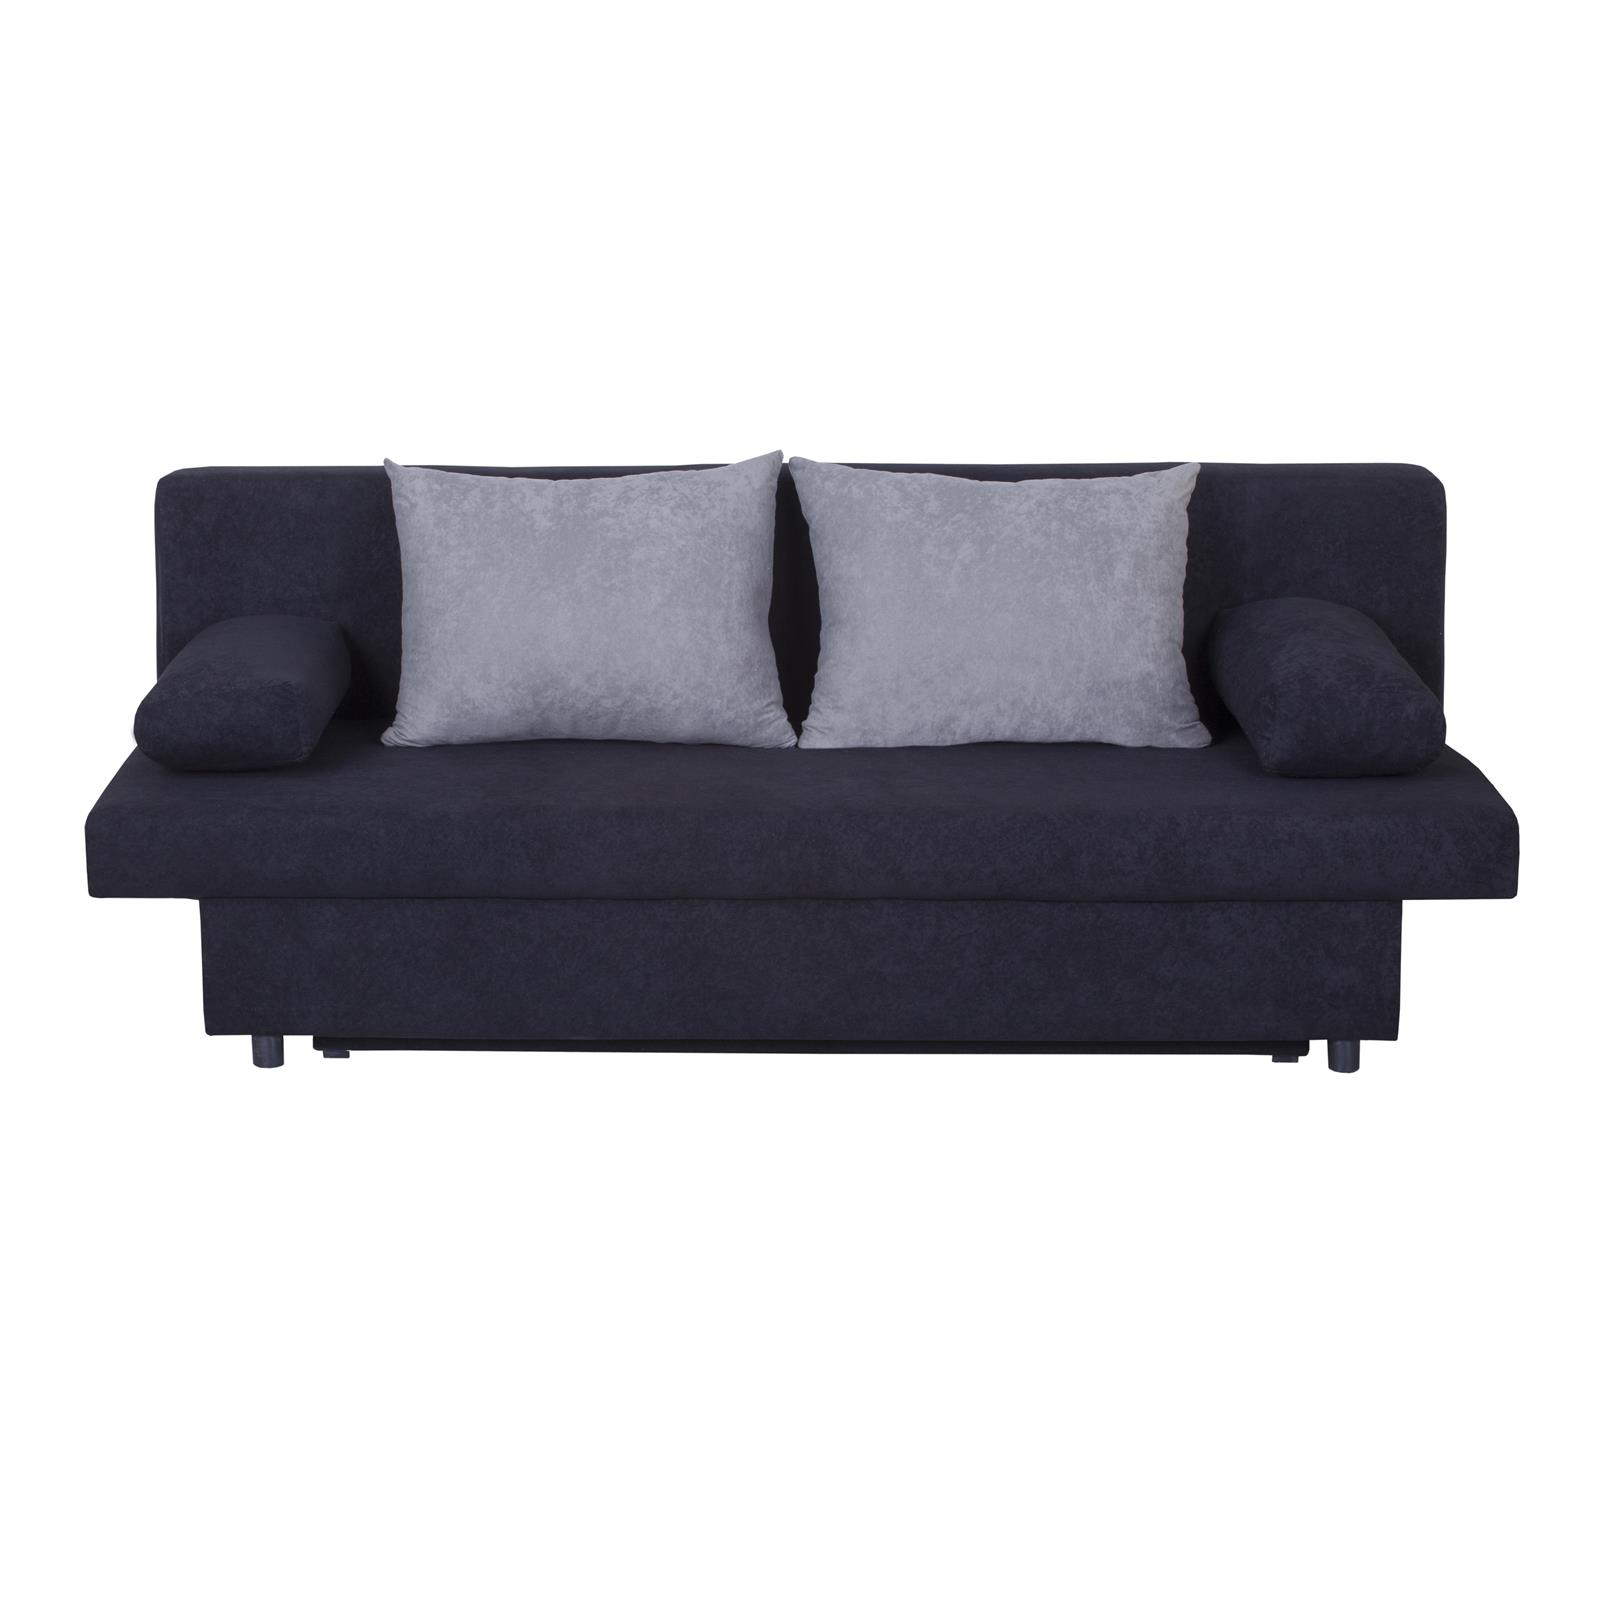 ikea schlafsofas mit bettkasten schlafcouch mit bettkasten ikea schlafsofa jelly sofa in. Black Bedroom Furniture Sets. Home Design Ideas